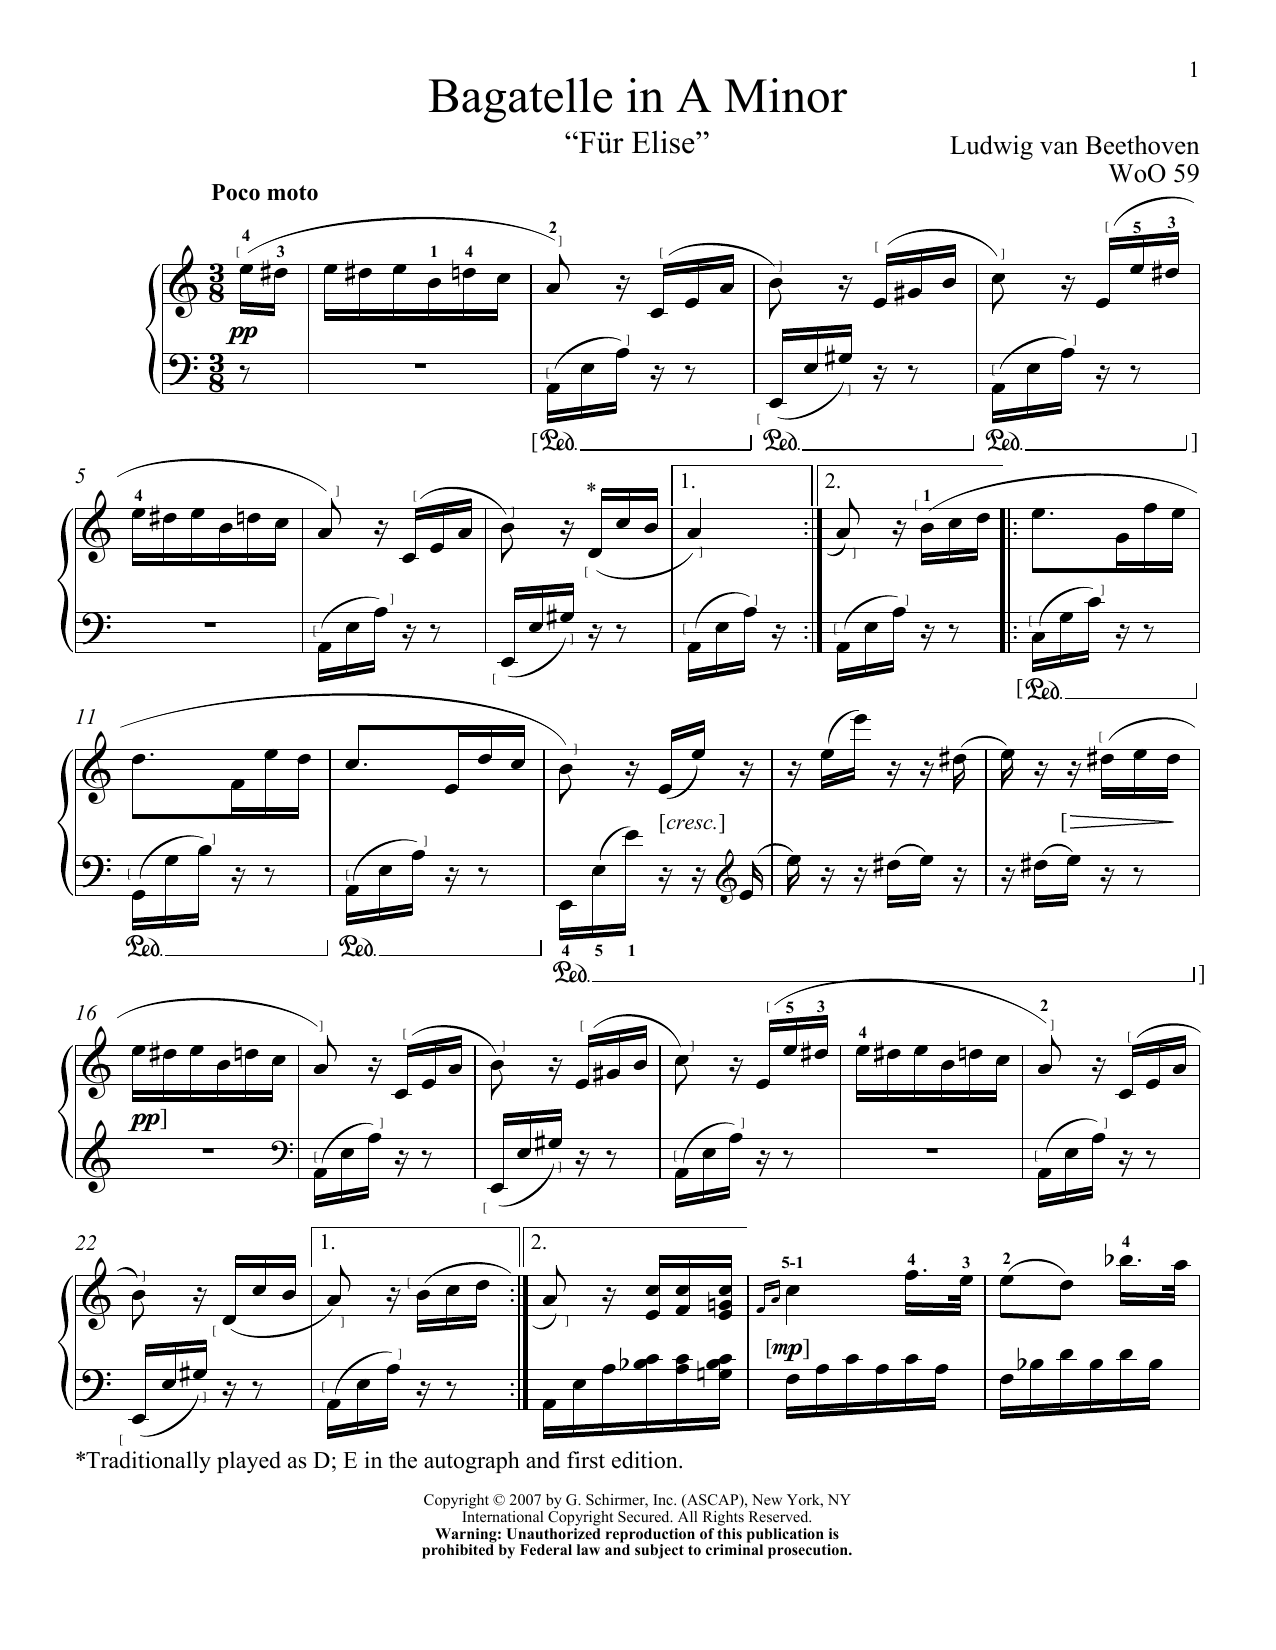 Piano fur elise piano tabs : Fur Elise sheet music by Ludwig van Beethoven (Piano – 62458)